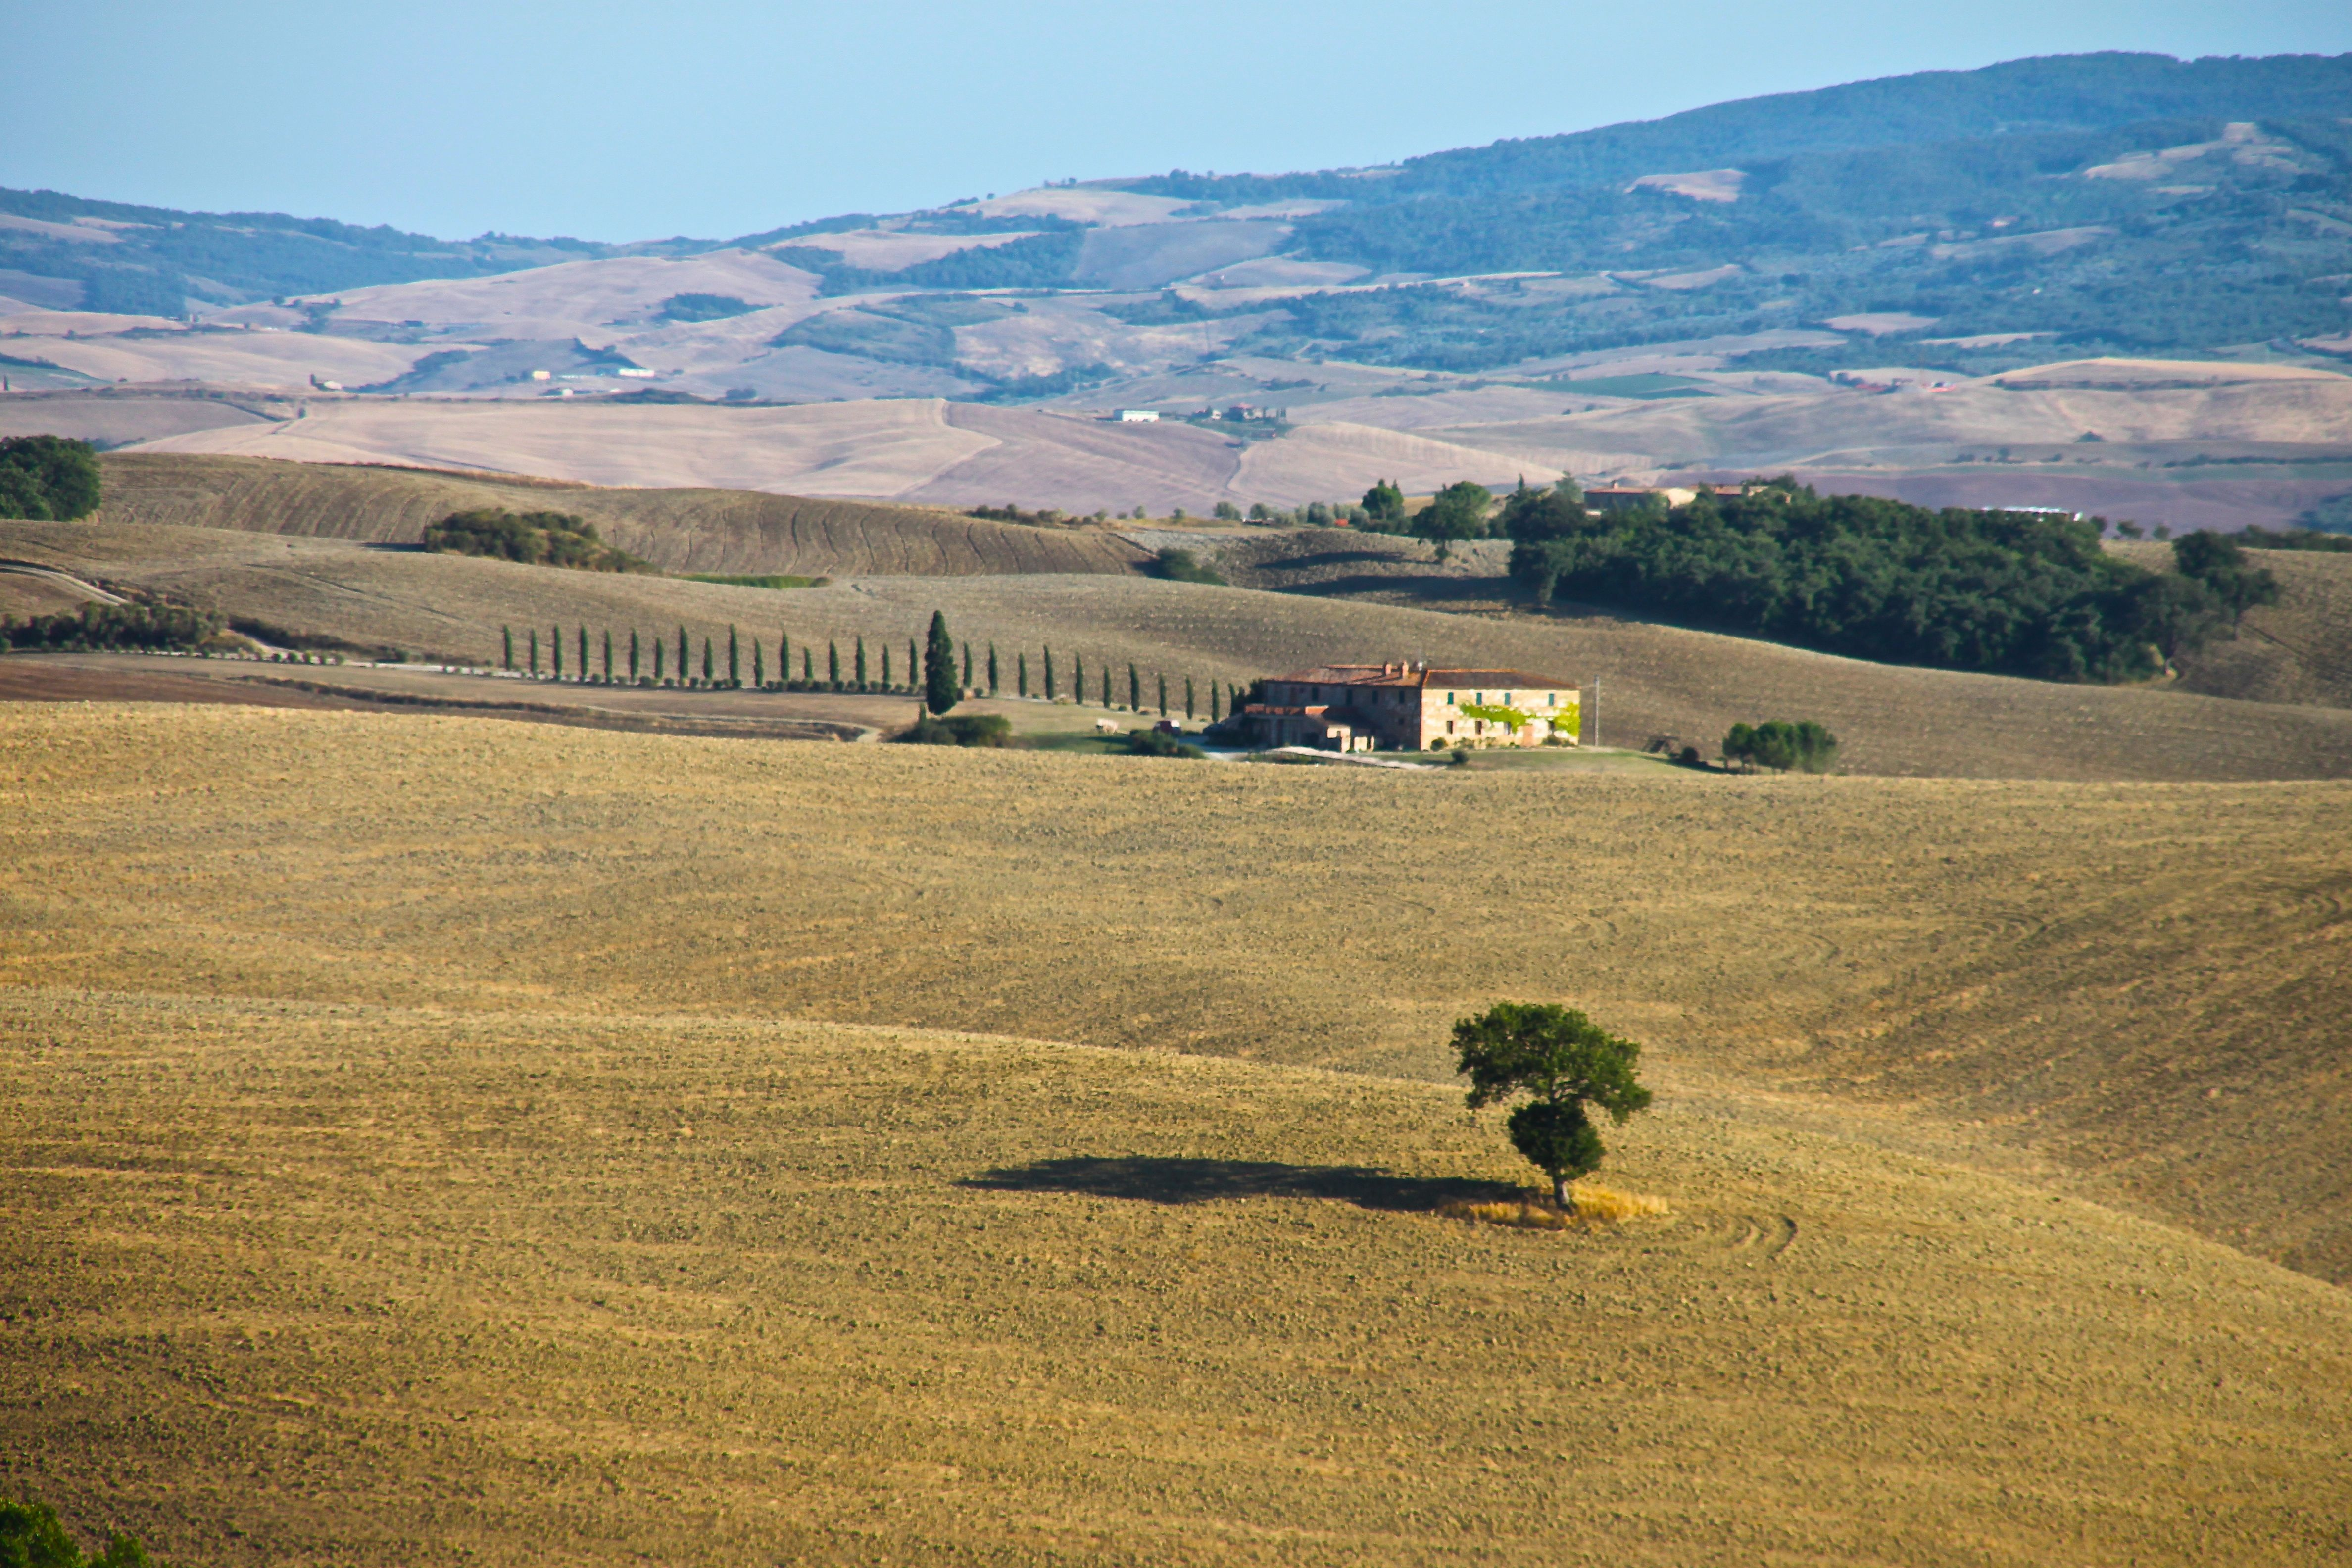 Tuscany's rolling hills offer a perfect spot to propose